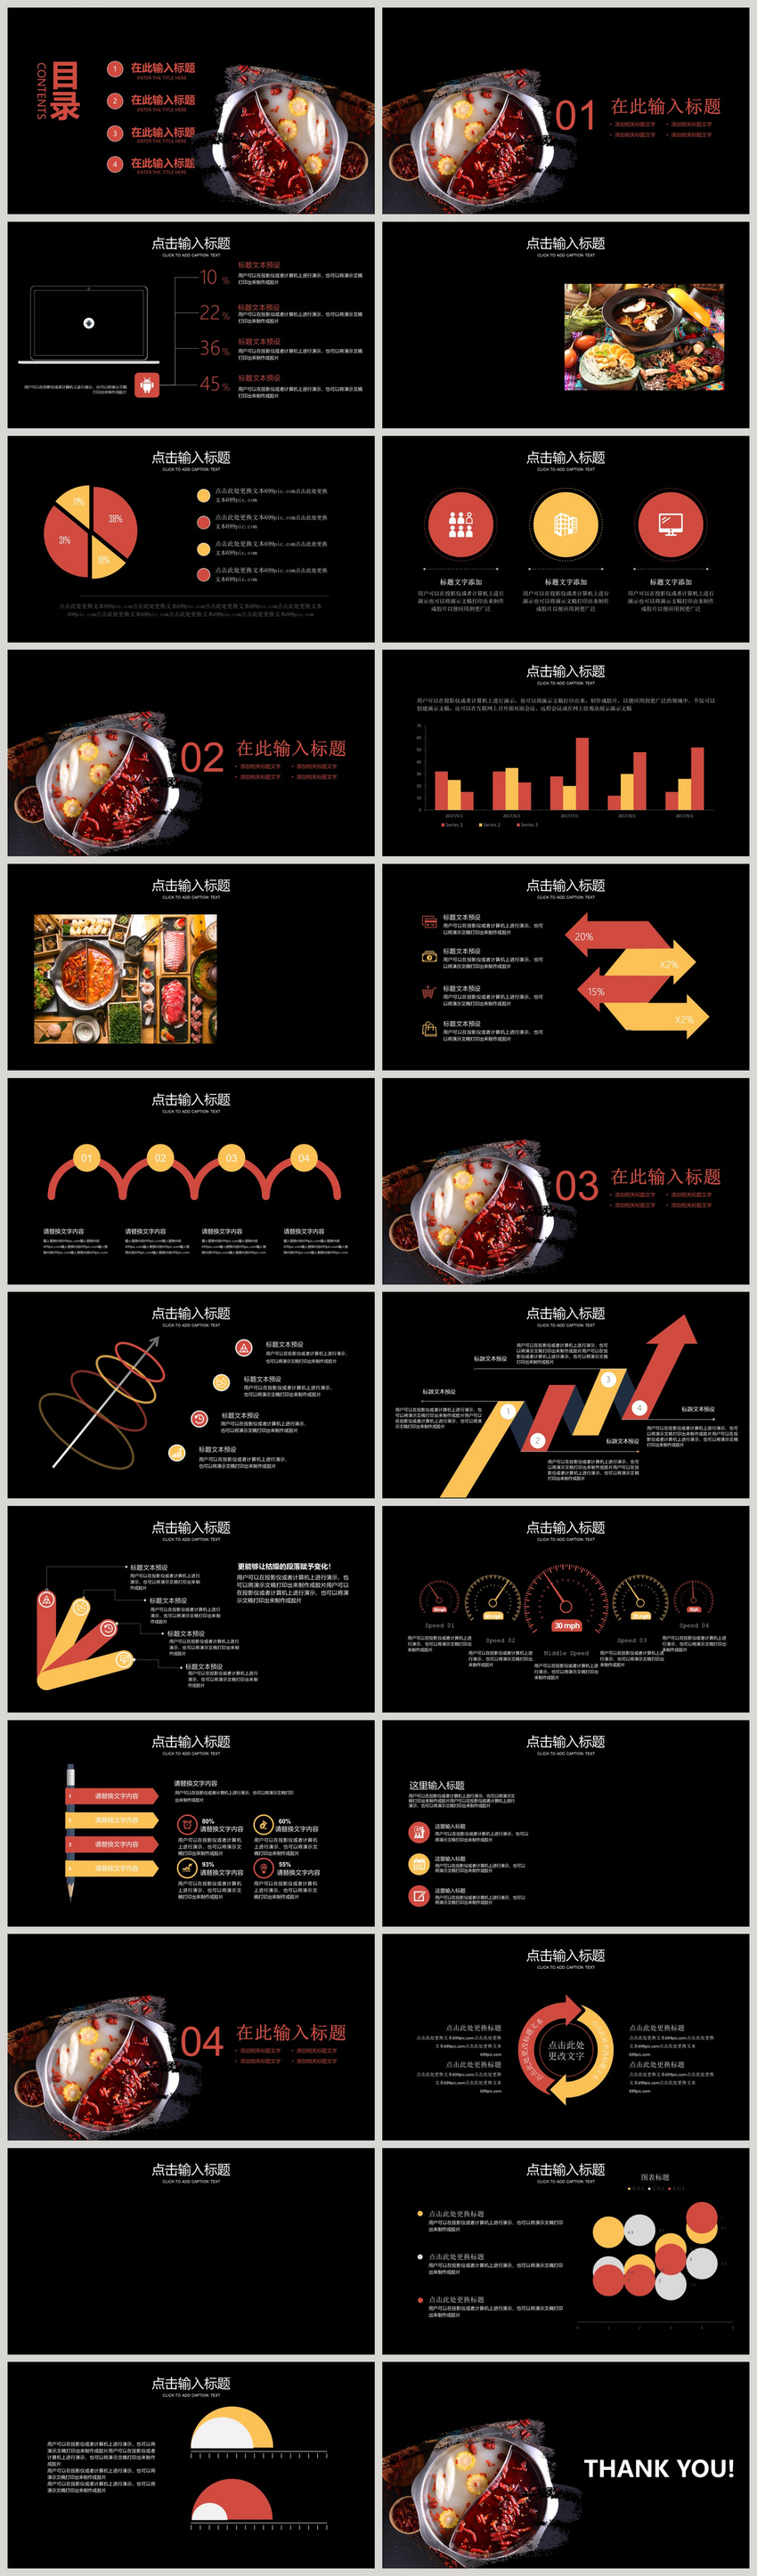 Hot Pot Culture And Food Ppt Template Powerpoint Templete Ppt Free Download 400203612 Lovepik Com